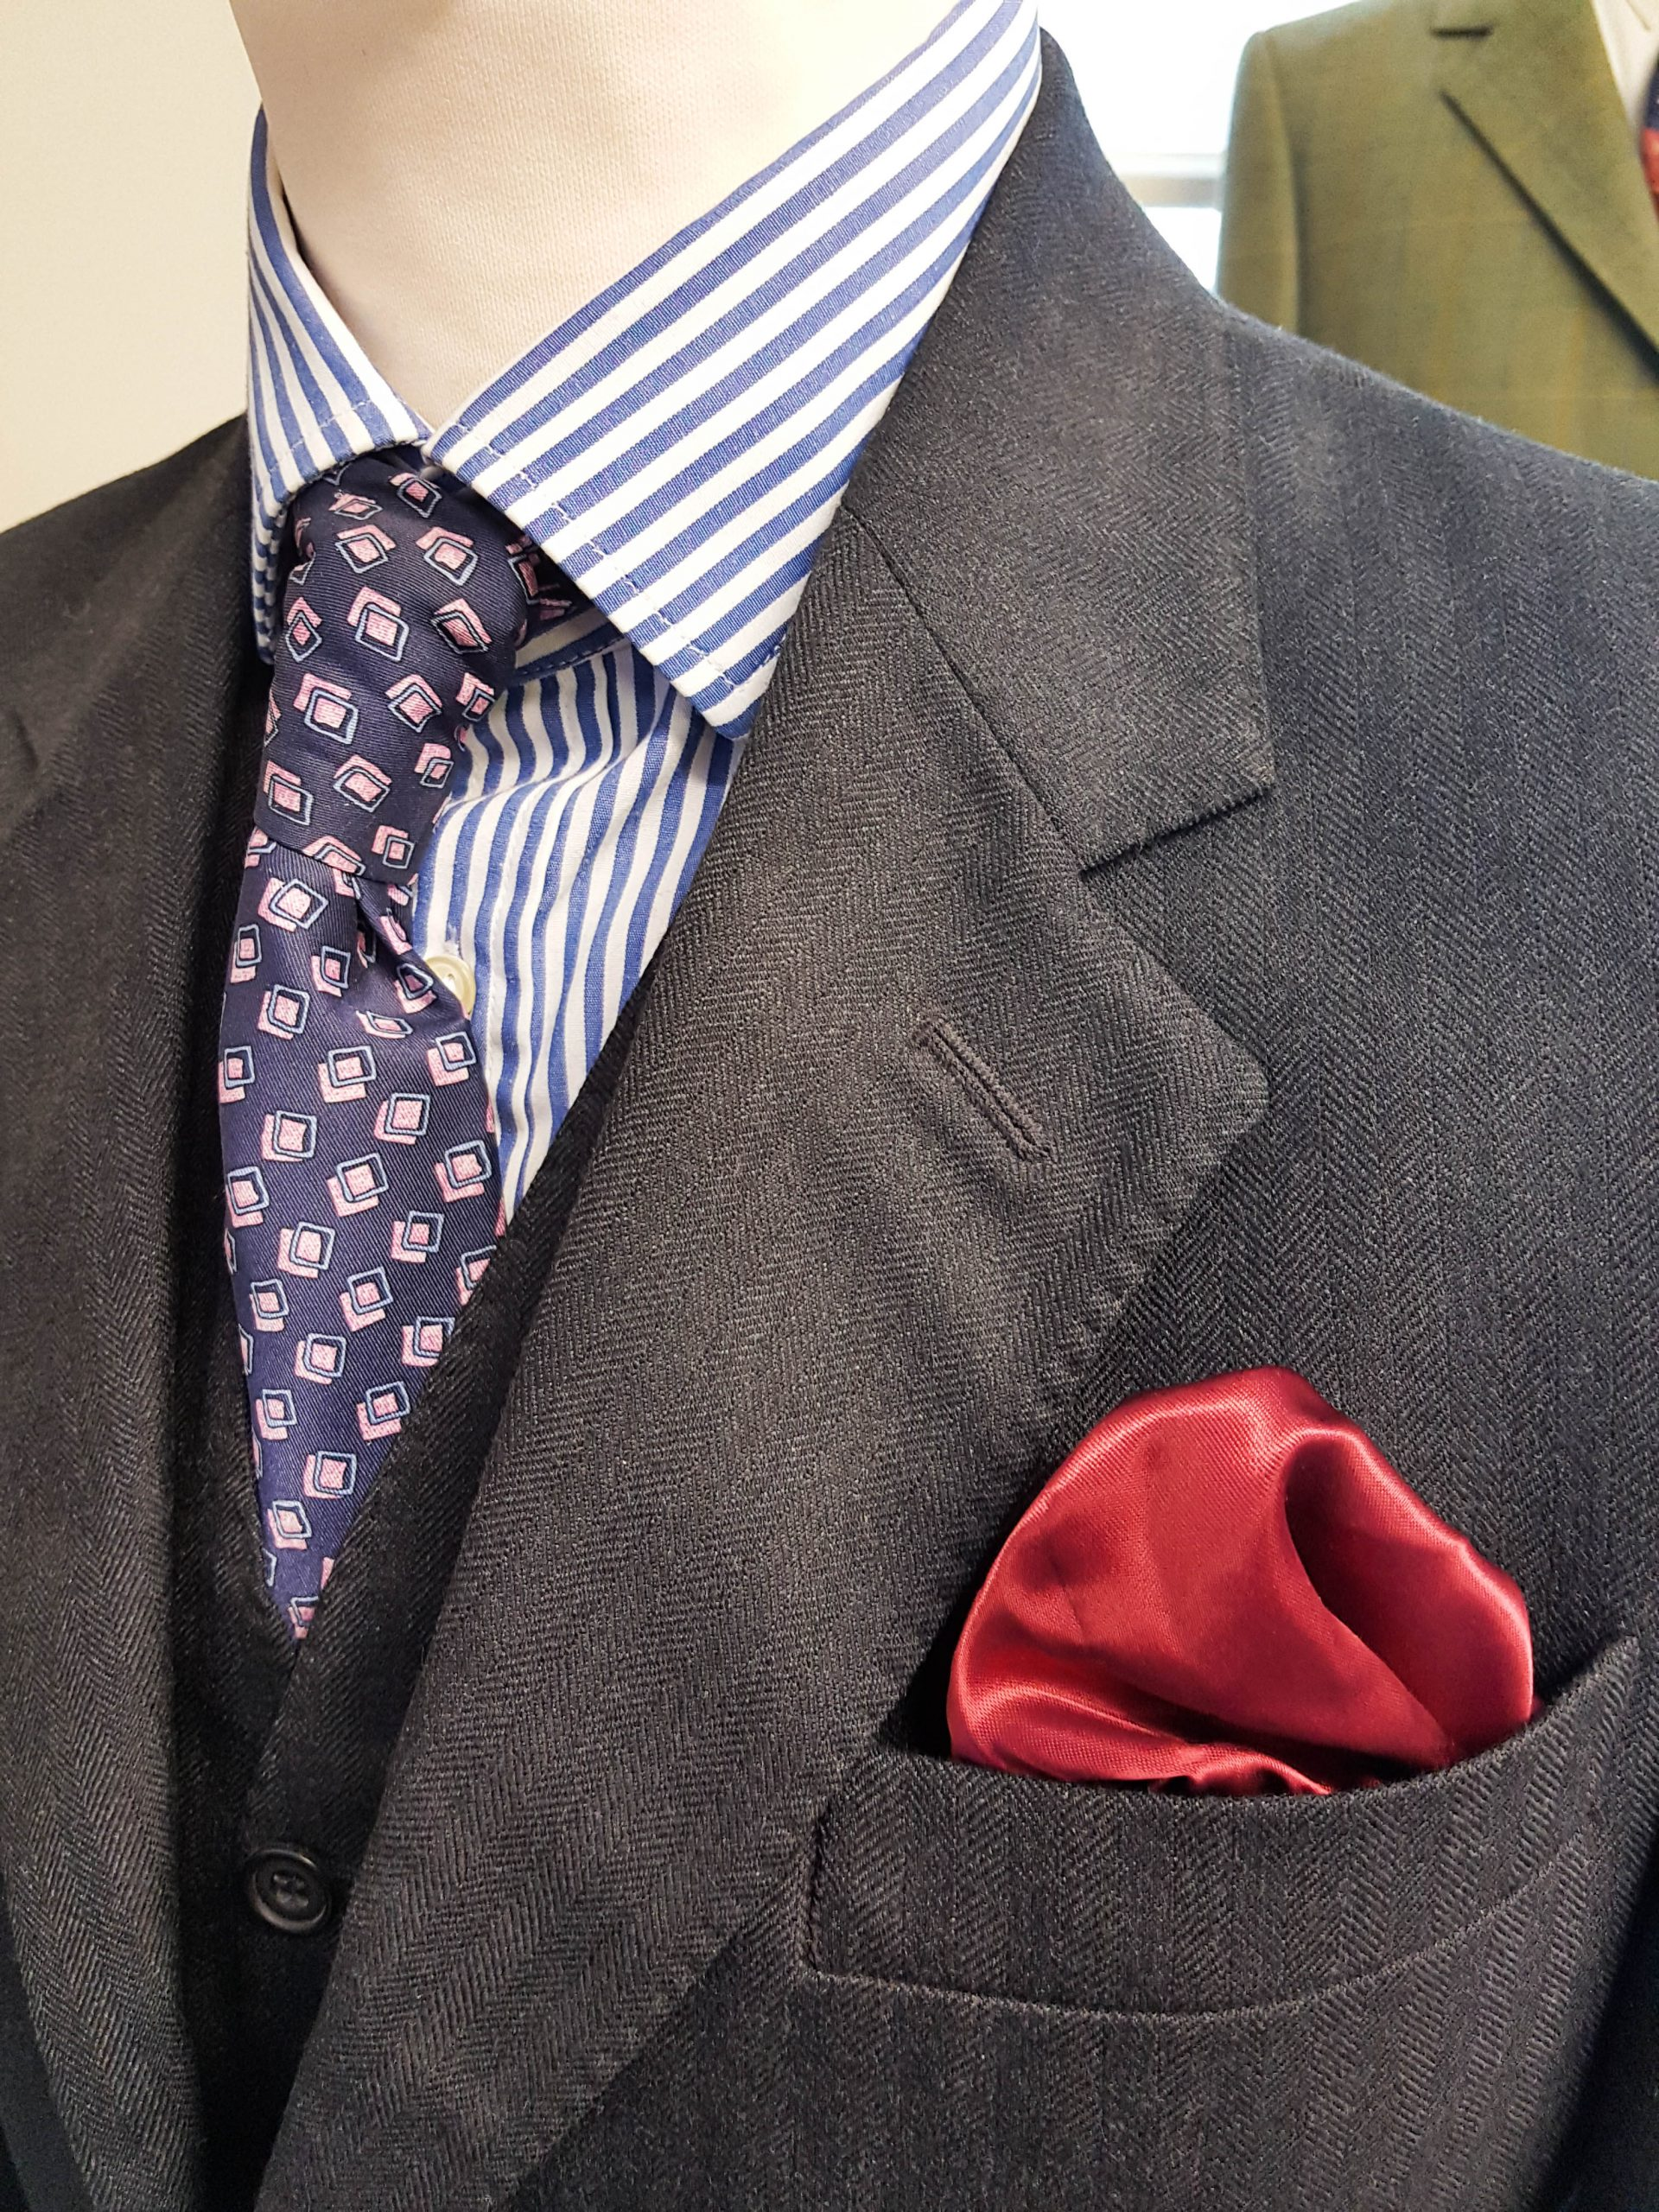 The importance of a tailored suit